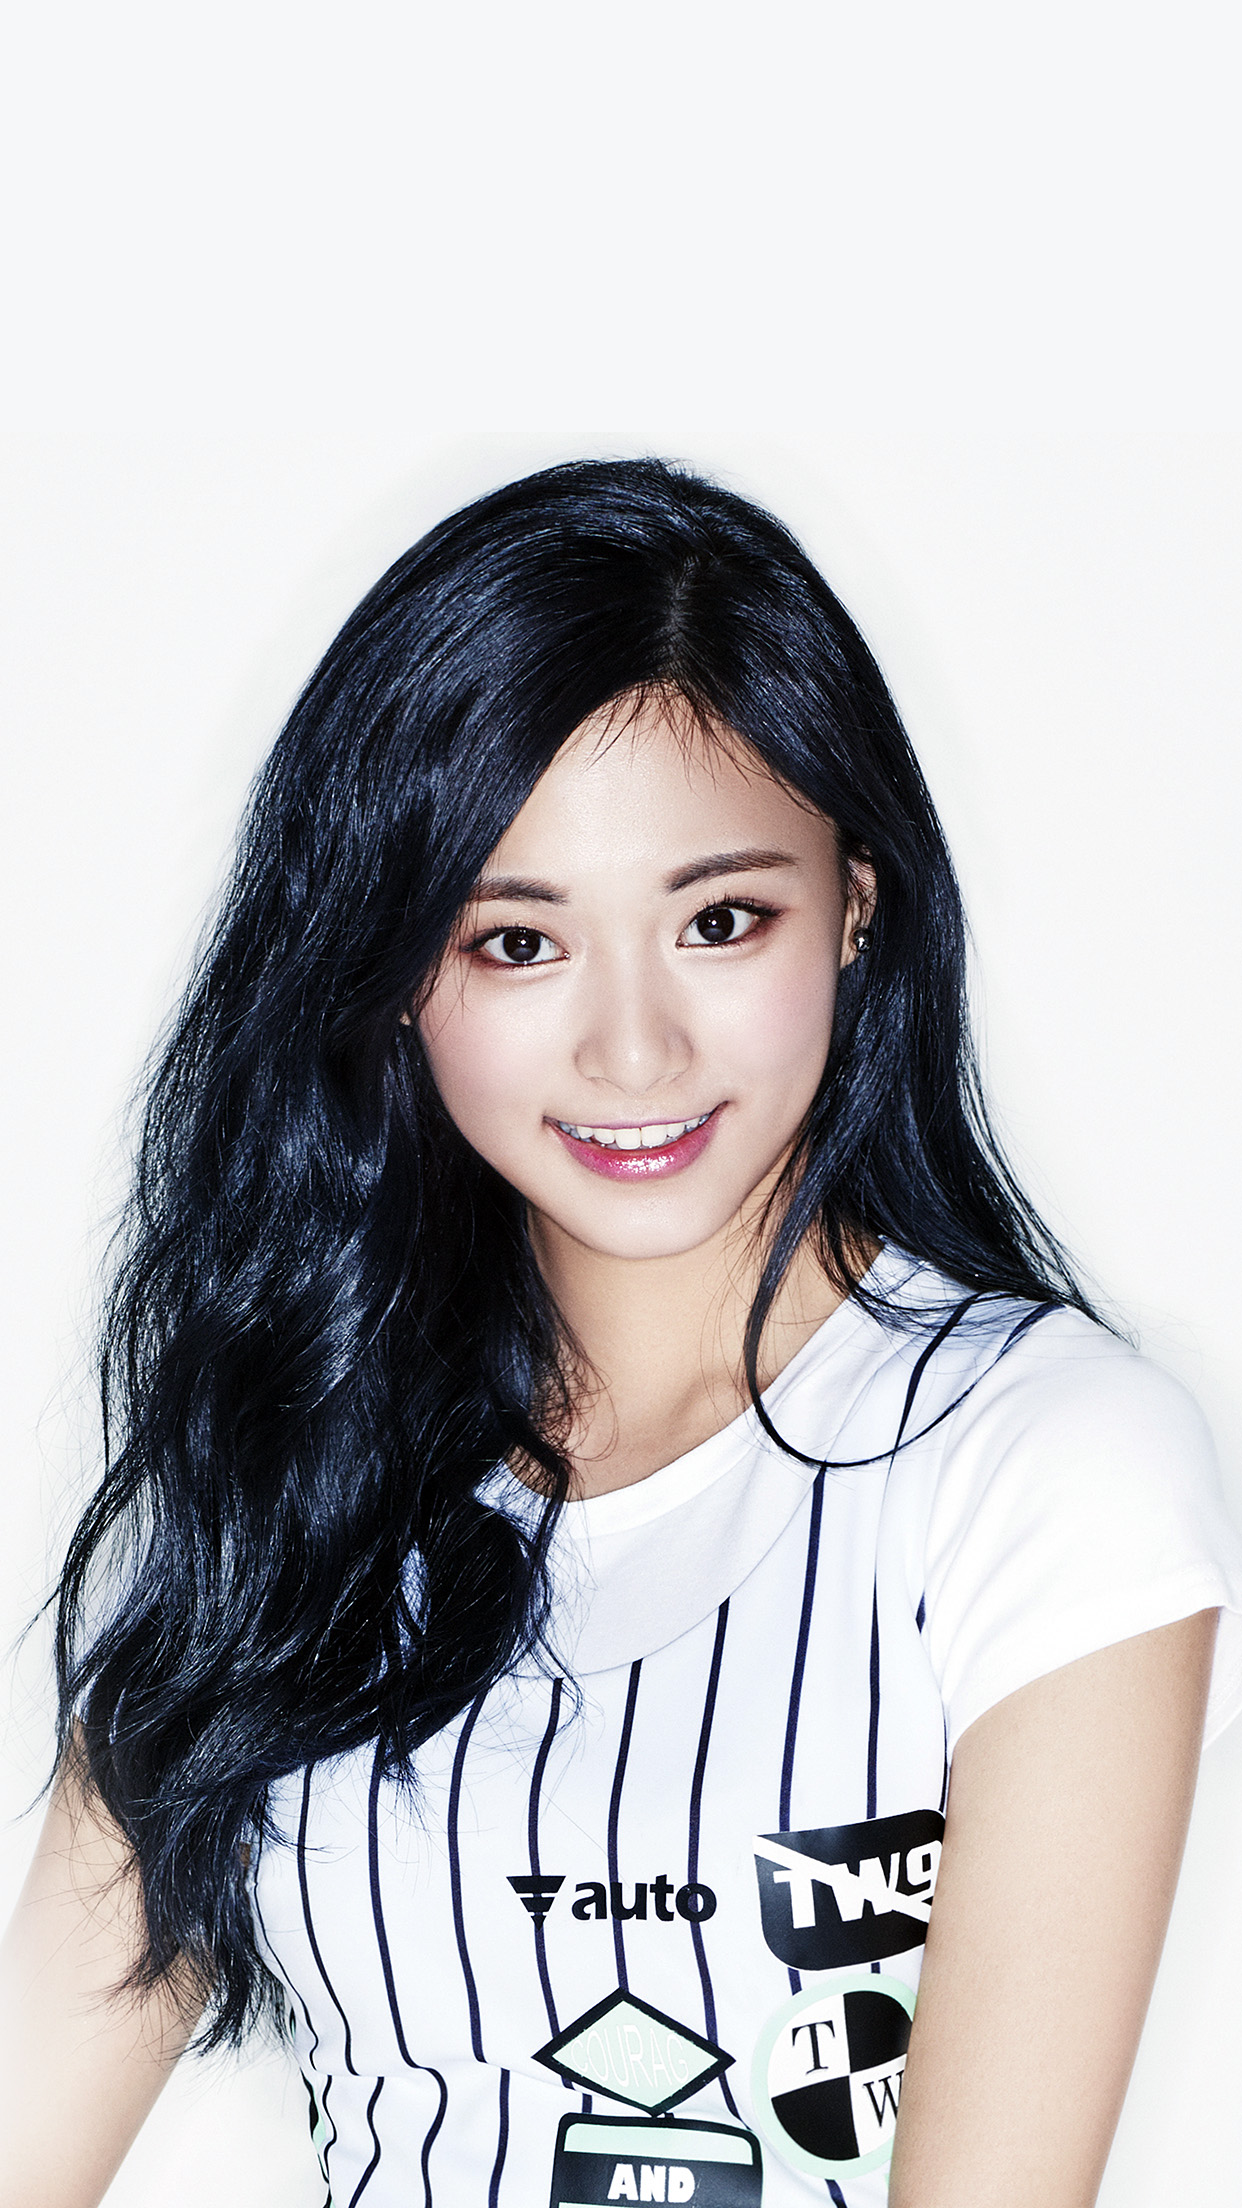 Tzuyu Kpop Girl Jyp Artist Music Android Wallpaper Android